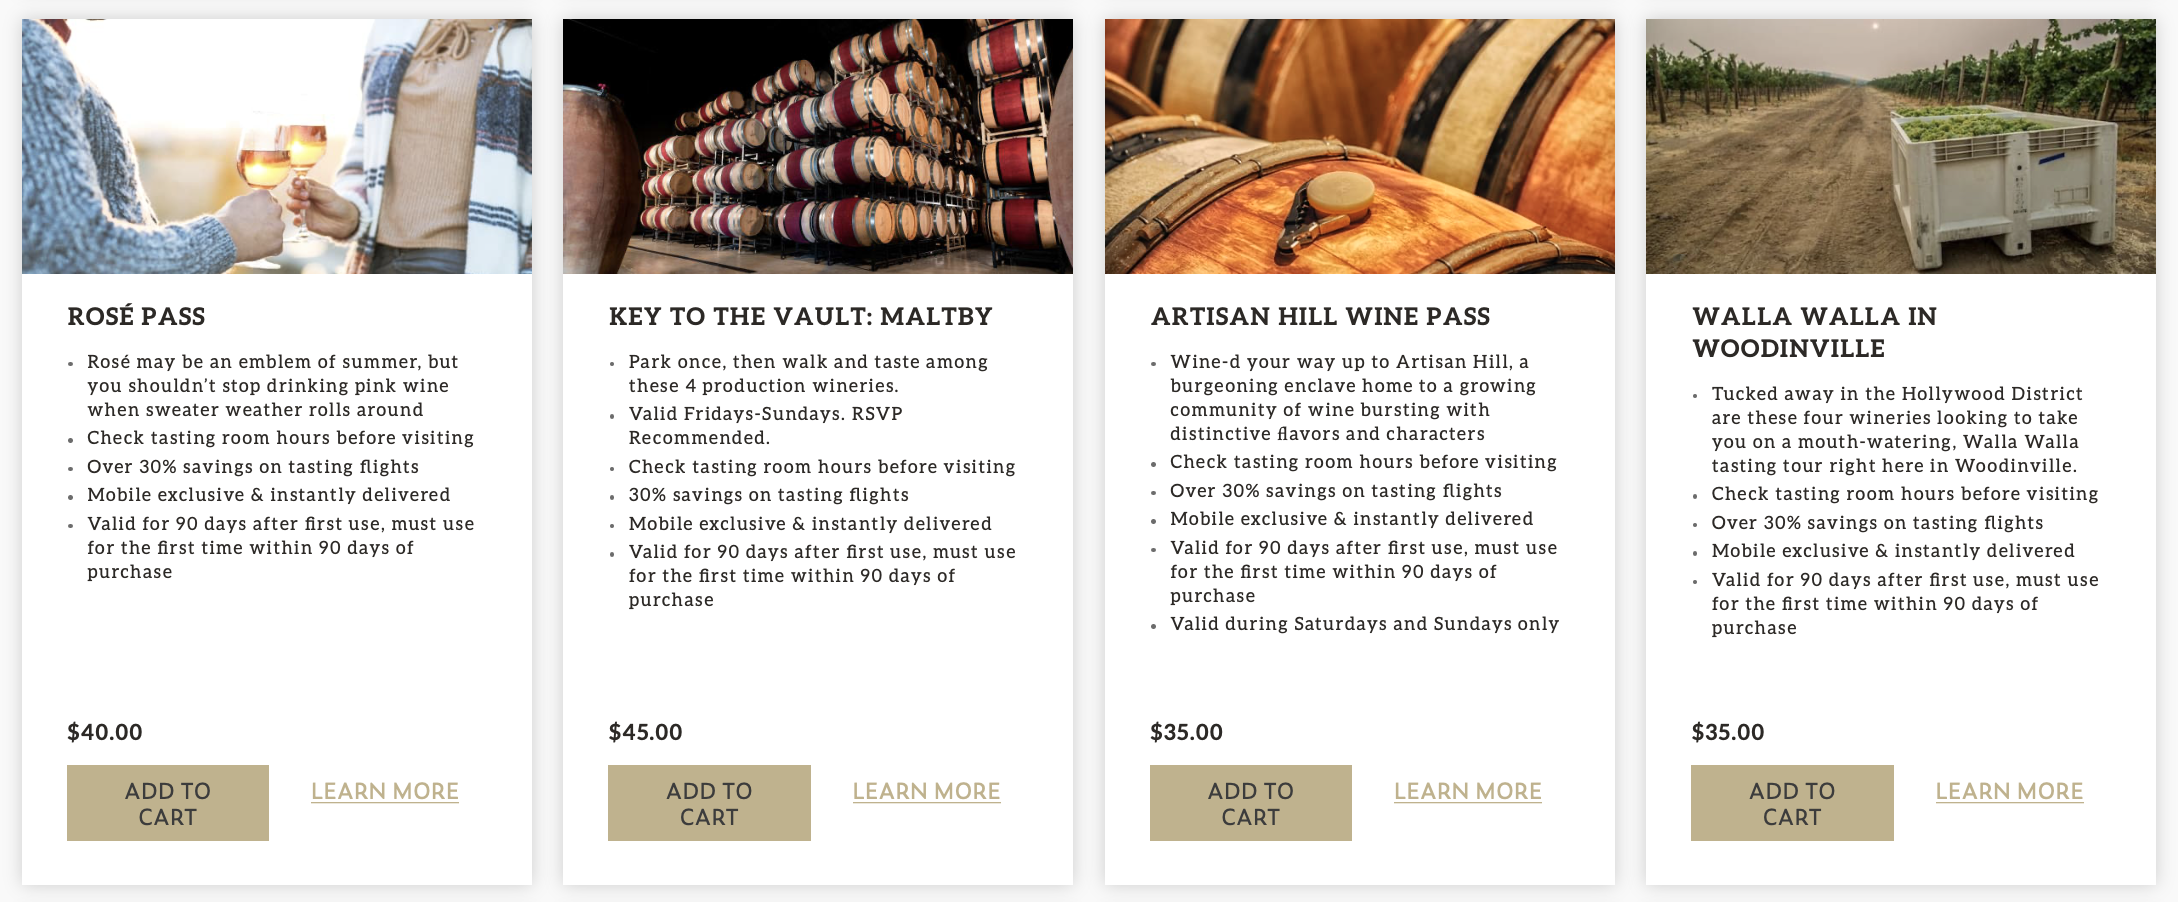 """A set of four images of people holding wine glasses with rose, stacks of wine barrels, a close-up image of wine barrel, and a bin of green grapes in a vineyard, with text below, reading """"Rose Pass,"""" """"Key to the Vault,"""" """"Artisan Hill Wine Pass,"""" and """"Walla Walla in Woodinville."""""""